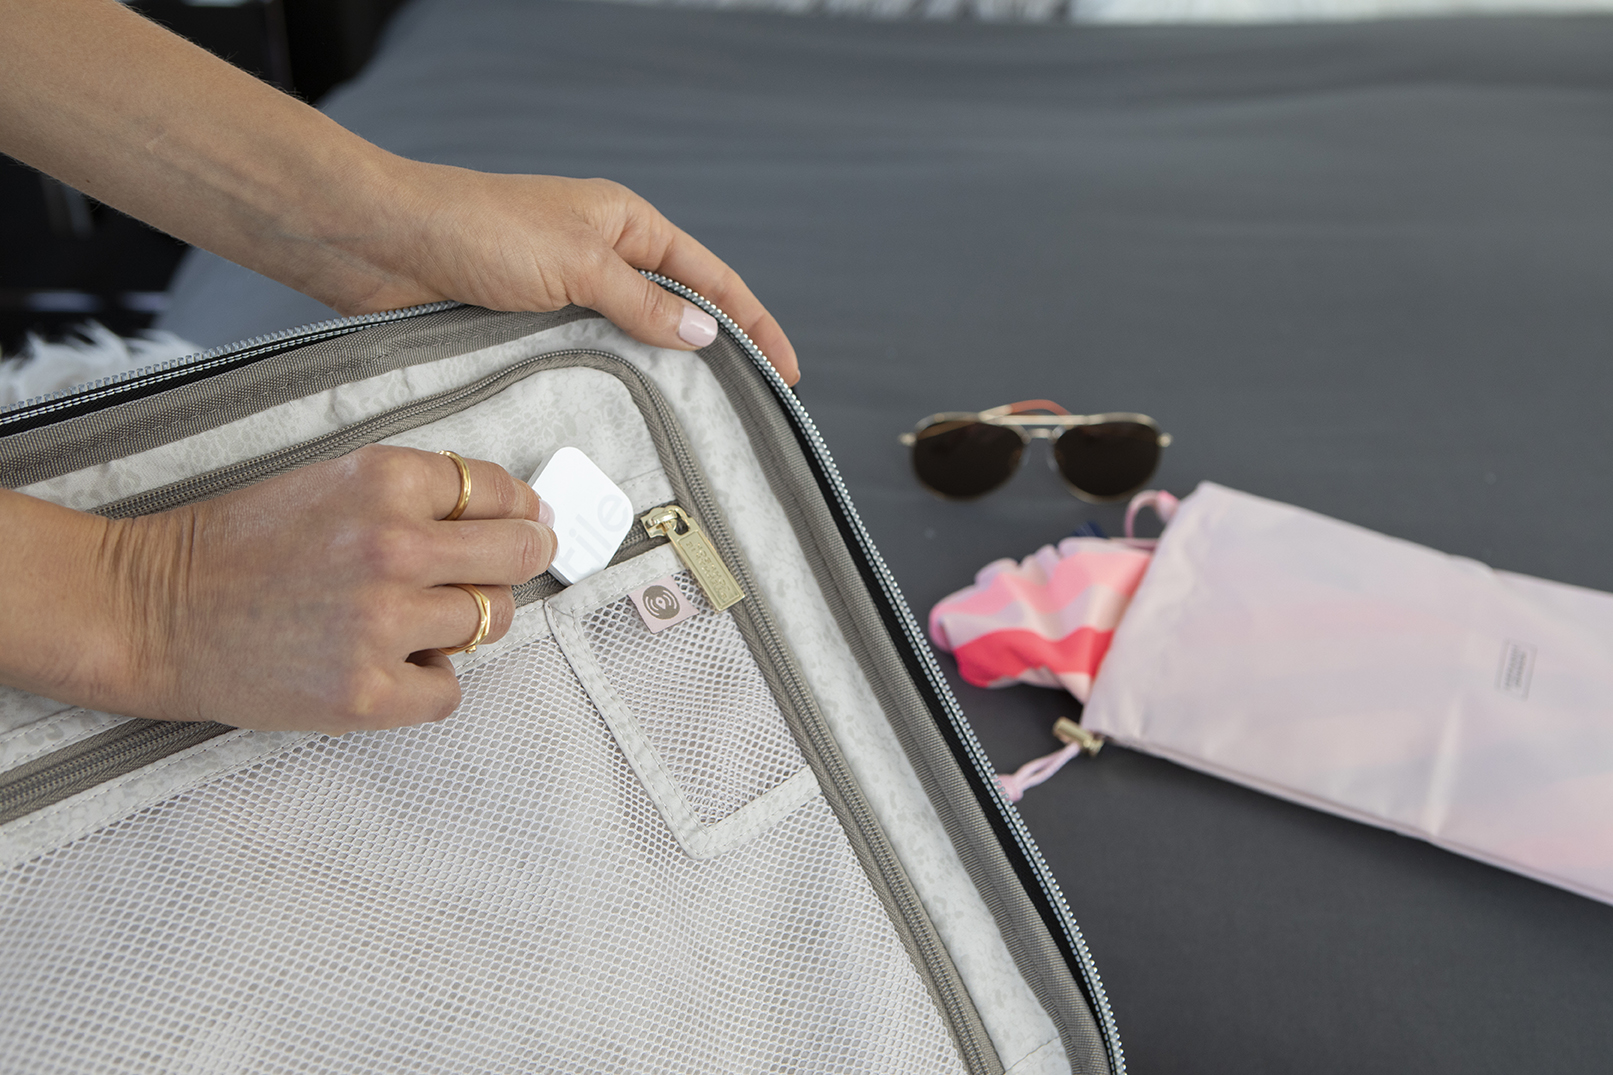 Woman placing a Tile bluetooth tracker inside pocket